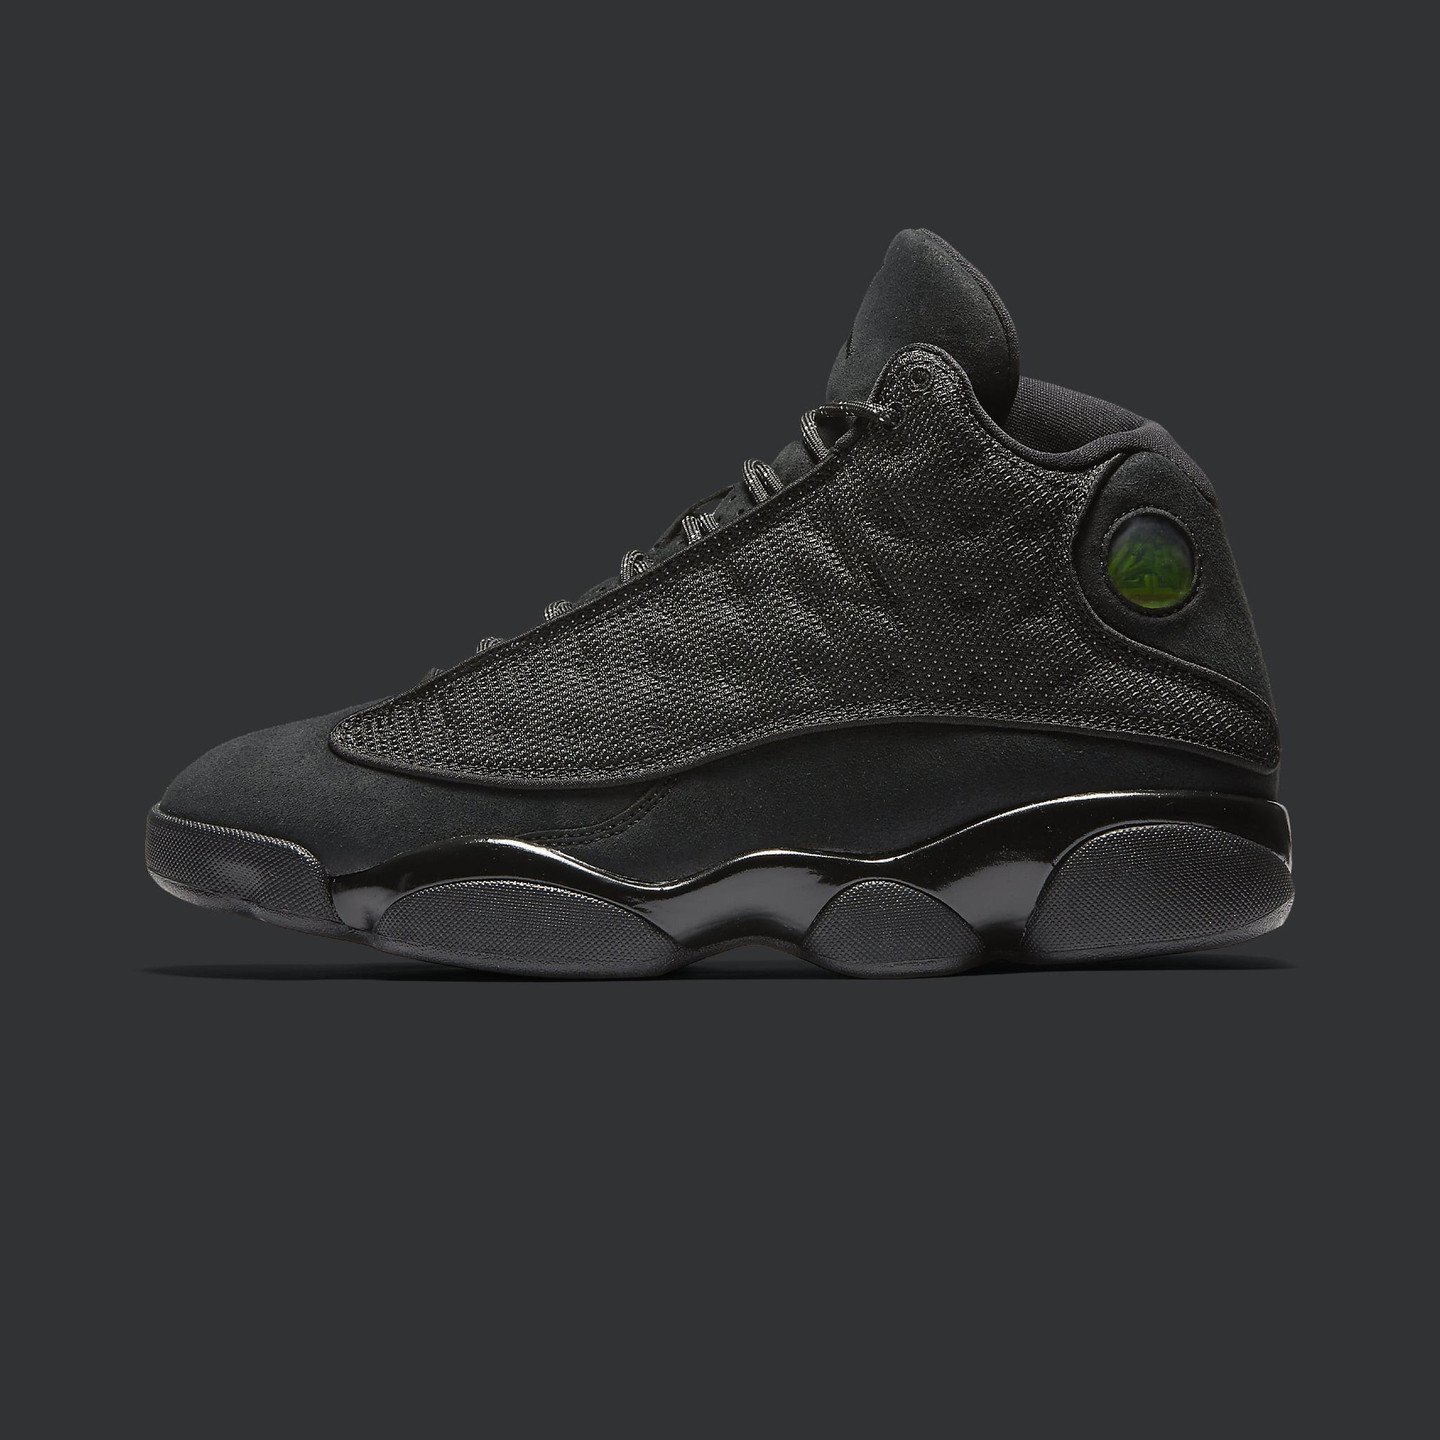 Jordan Air Jordan 13 Retro 'Black Cat' Black / Anthracite 414571-011-46